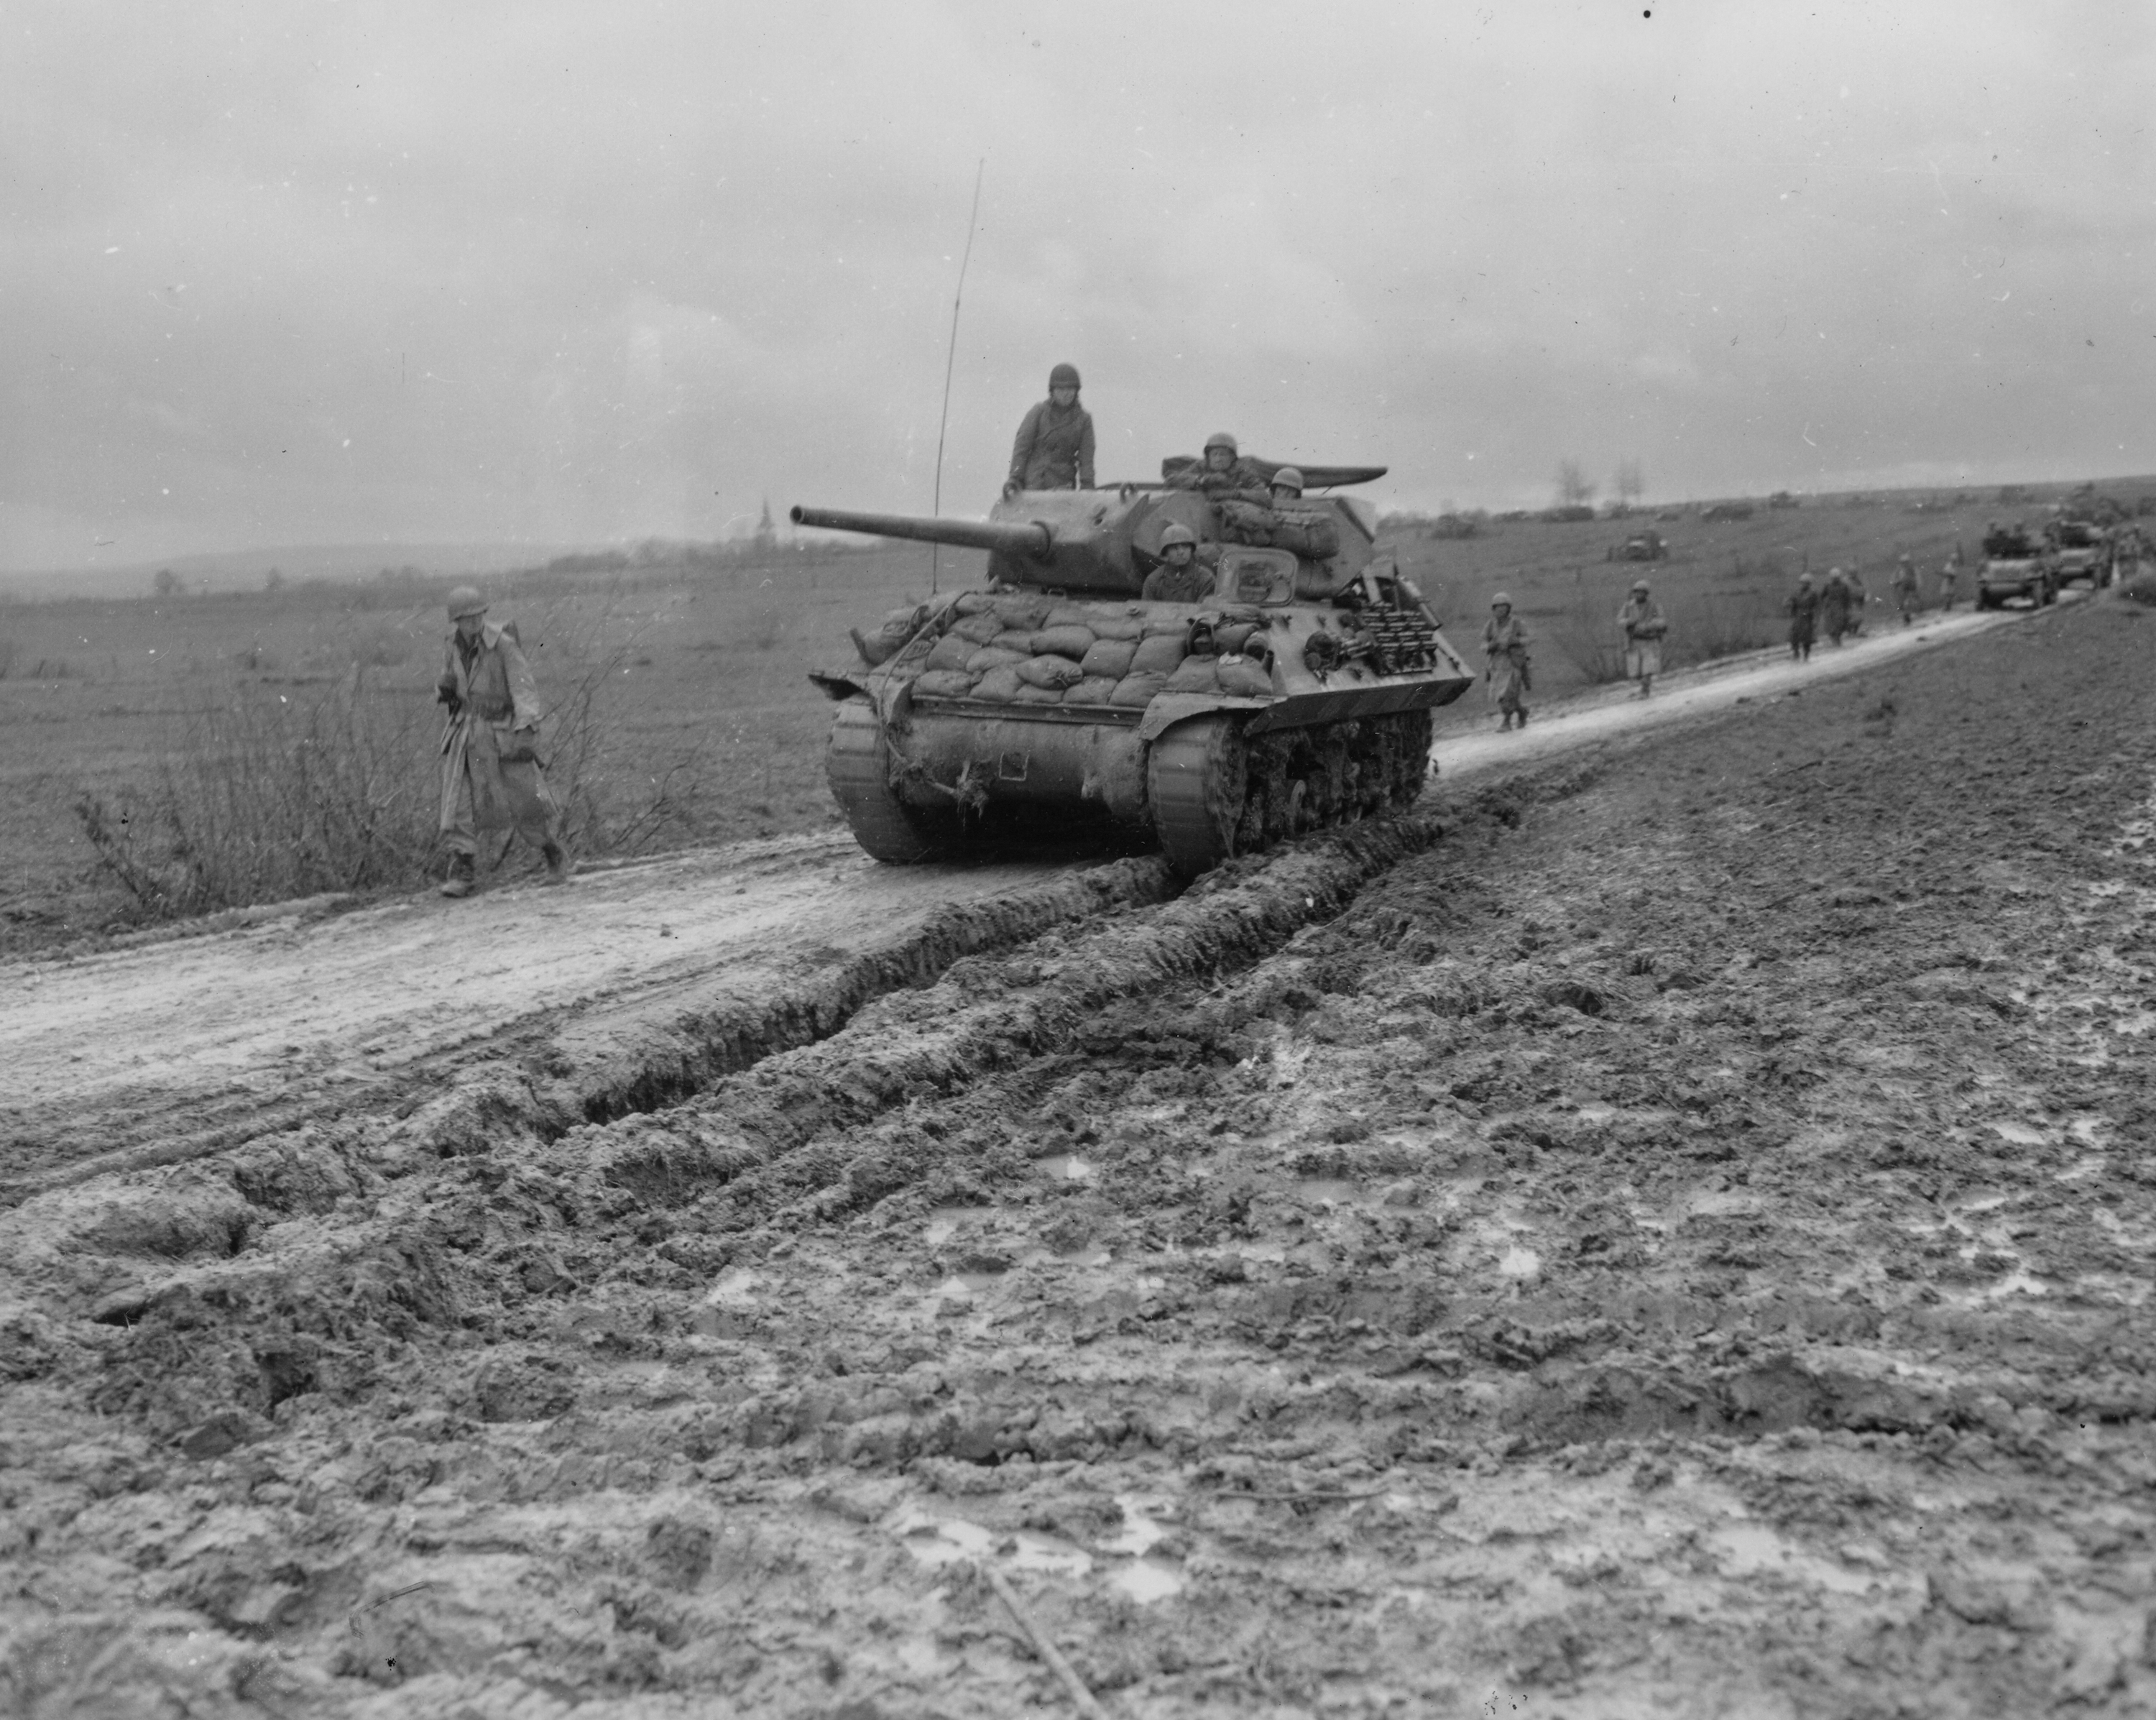 2nd-french-armored-div-m10-halloville-france-nov-13-44570